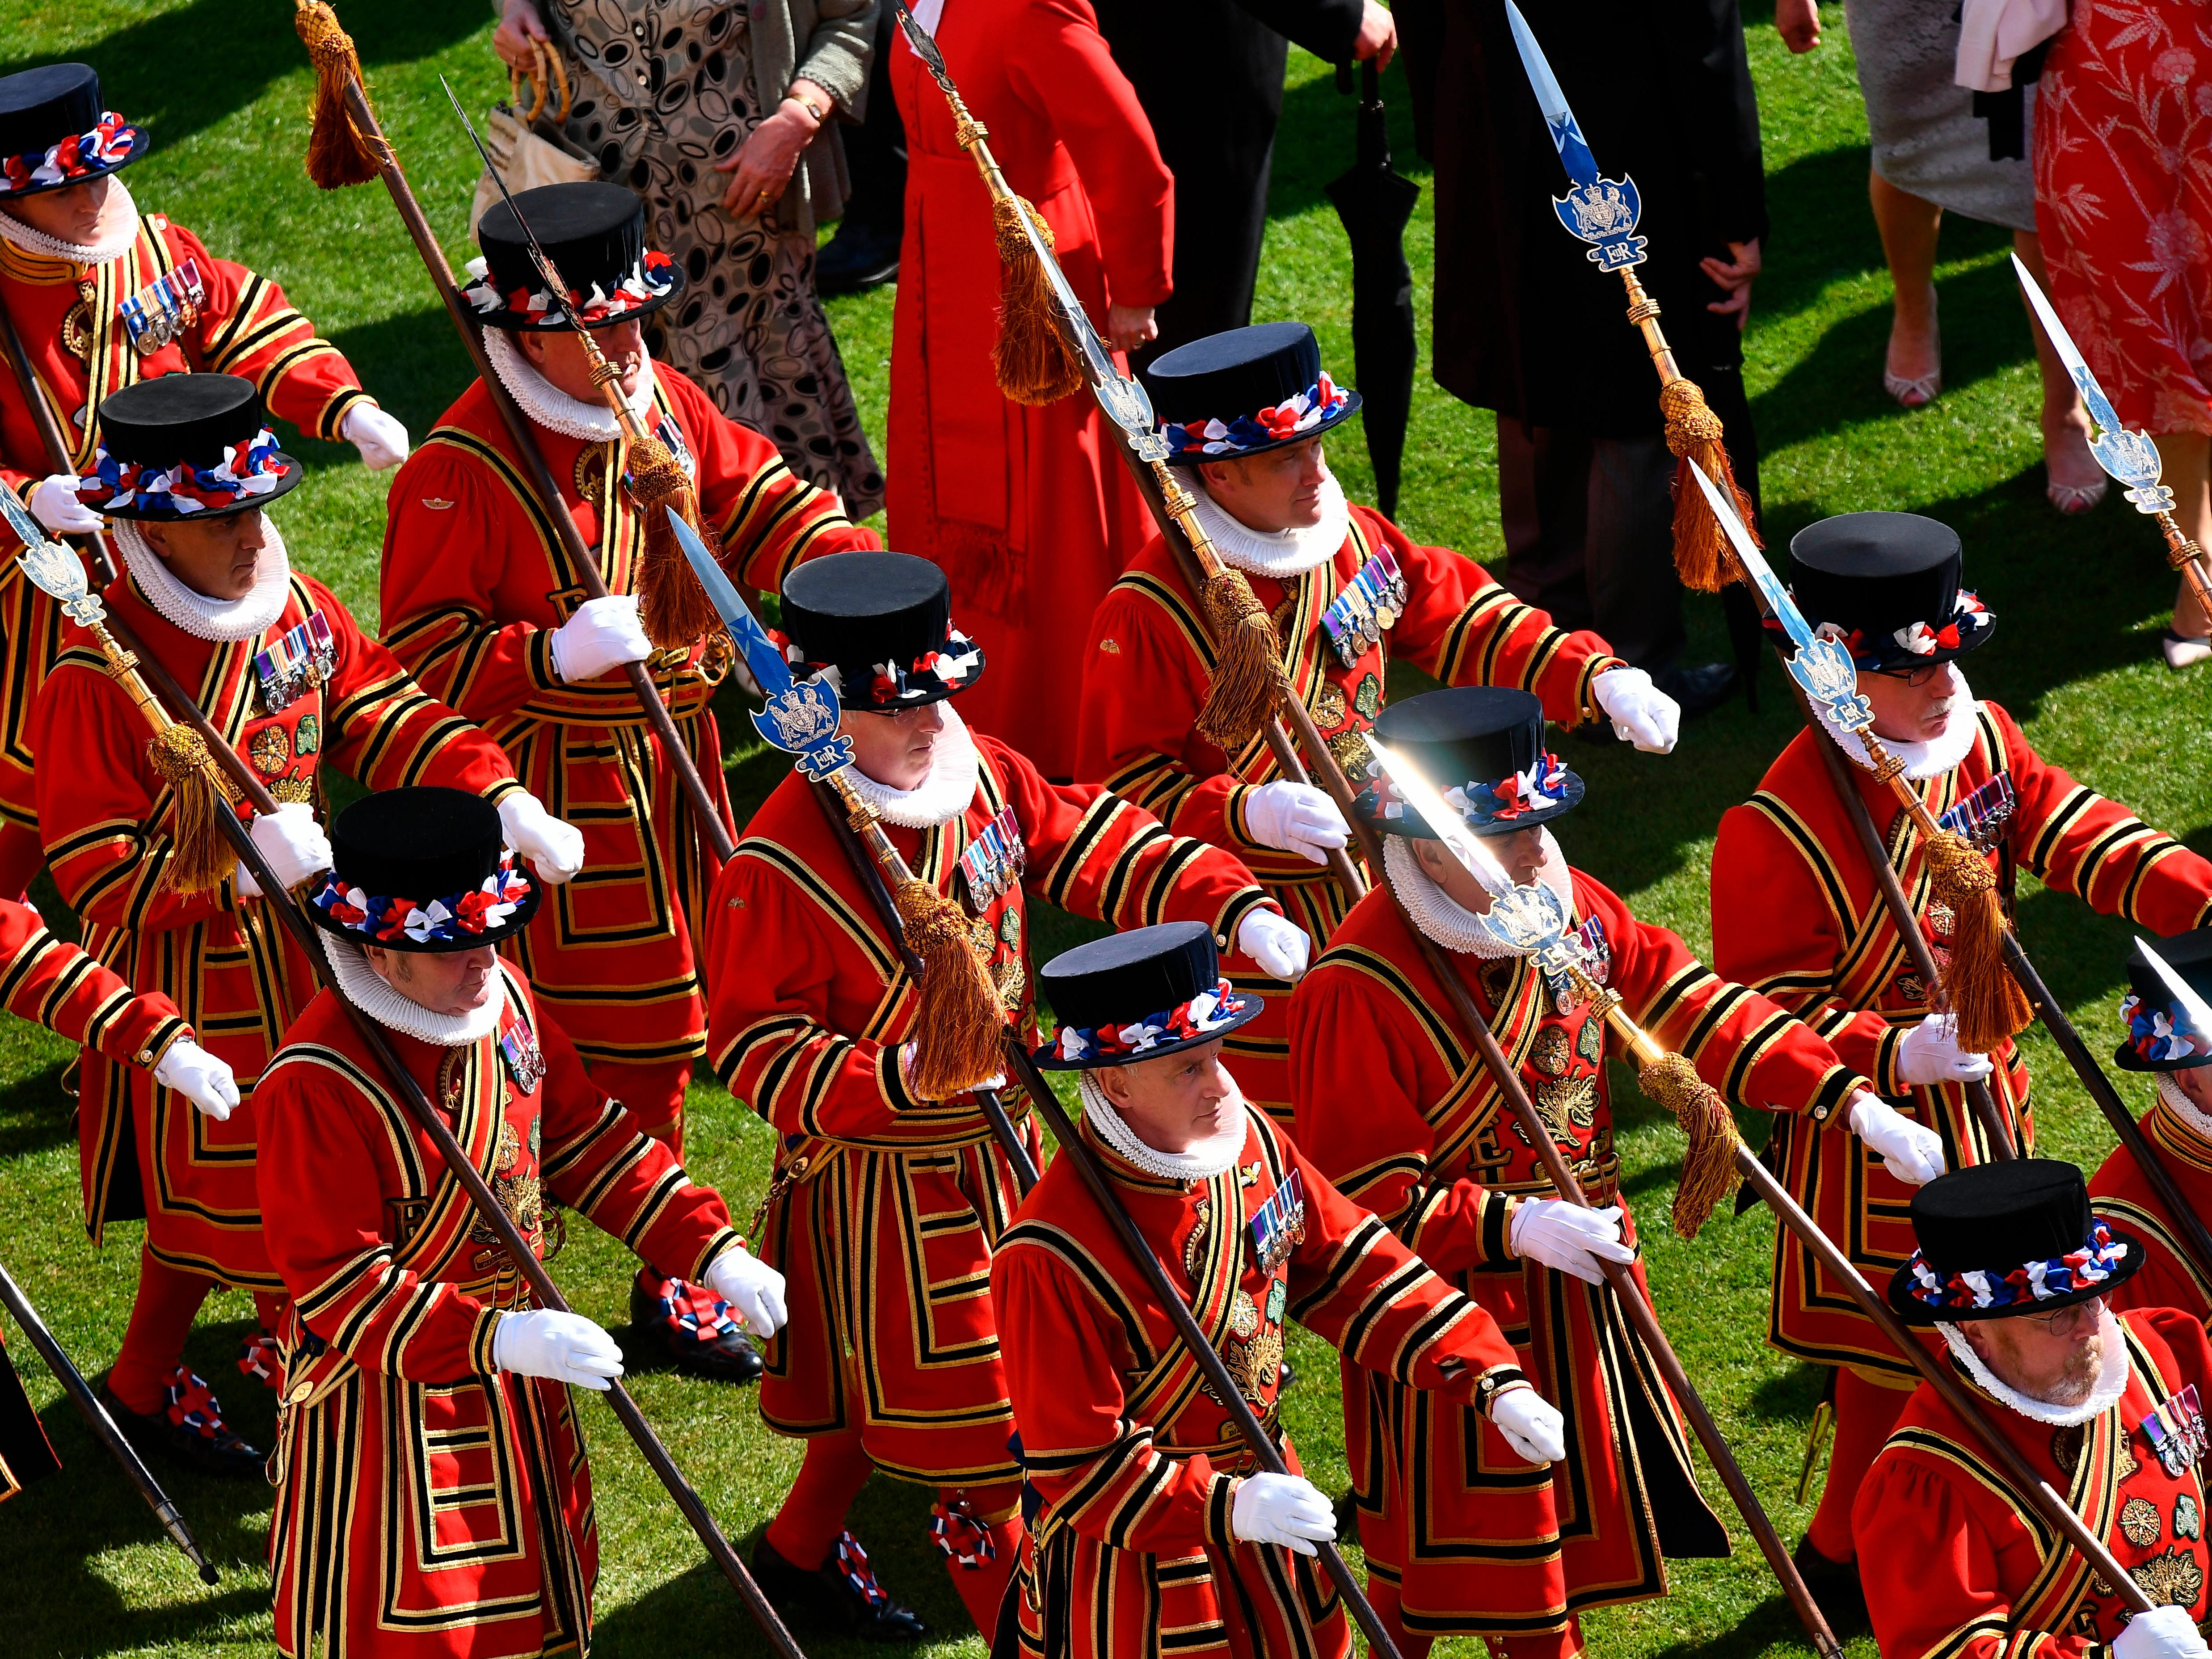 Yeomen of the Guard march is formation at a garden party on the grounds of Buckingham Palace in central London, Tuesday May 21, 2019.